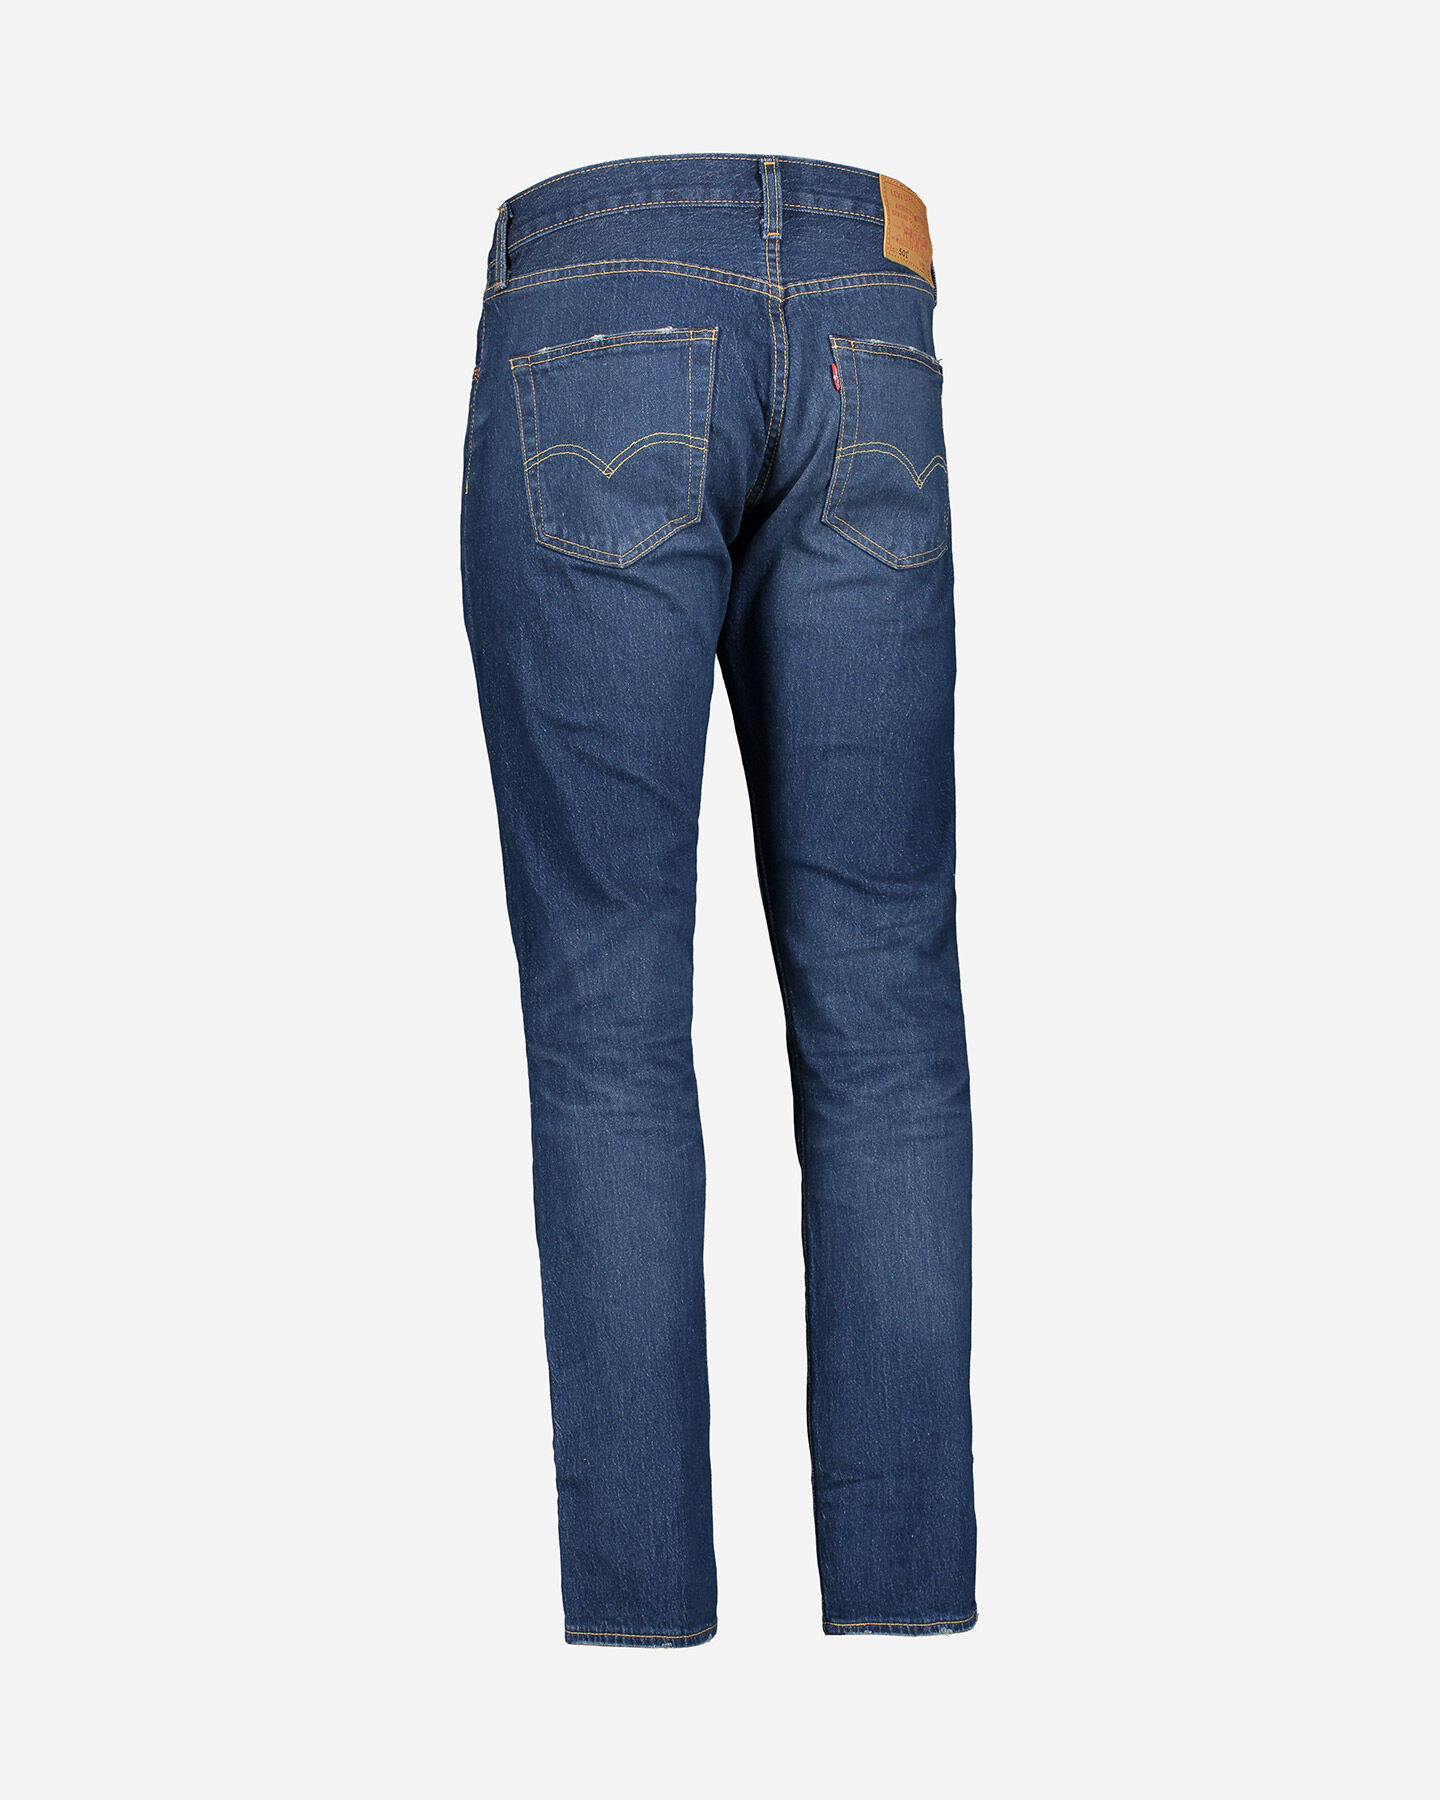 Jeans LEVI'S 501 REGULAR M S4082676 scatto 2